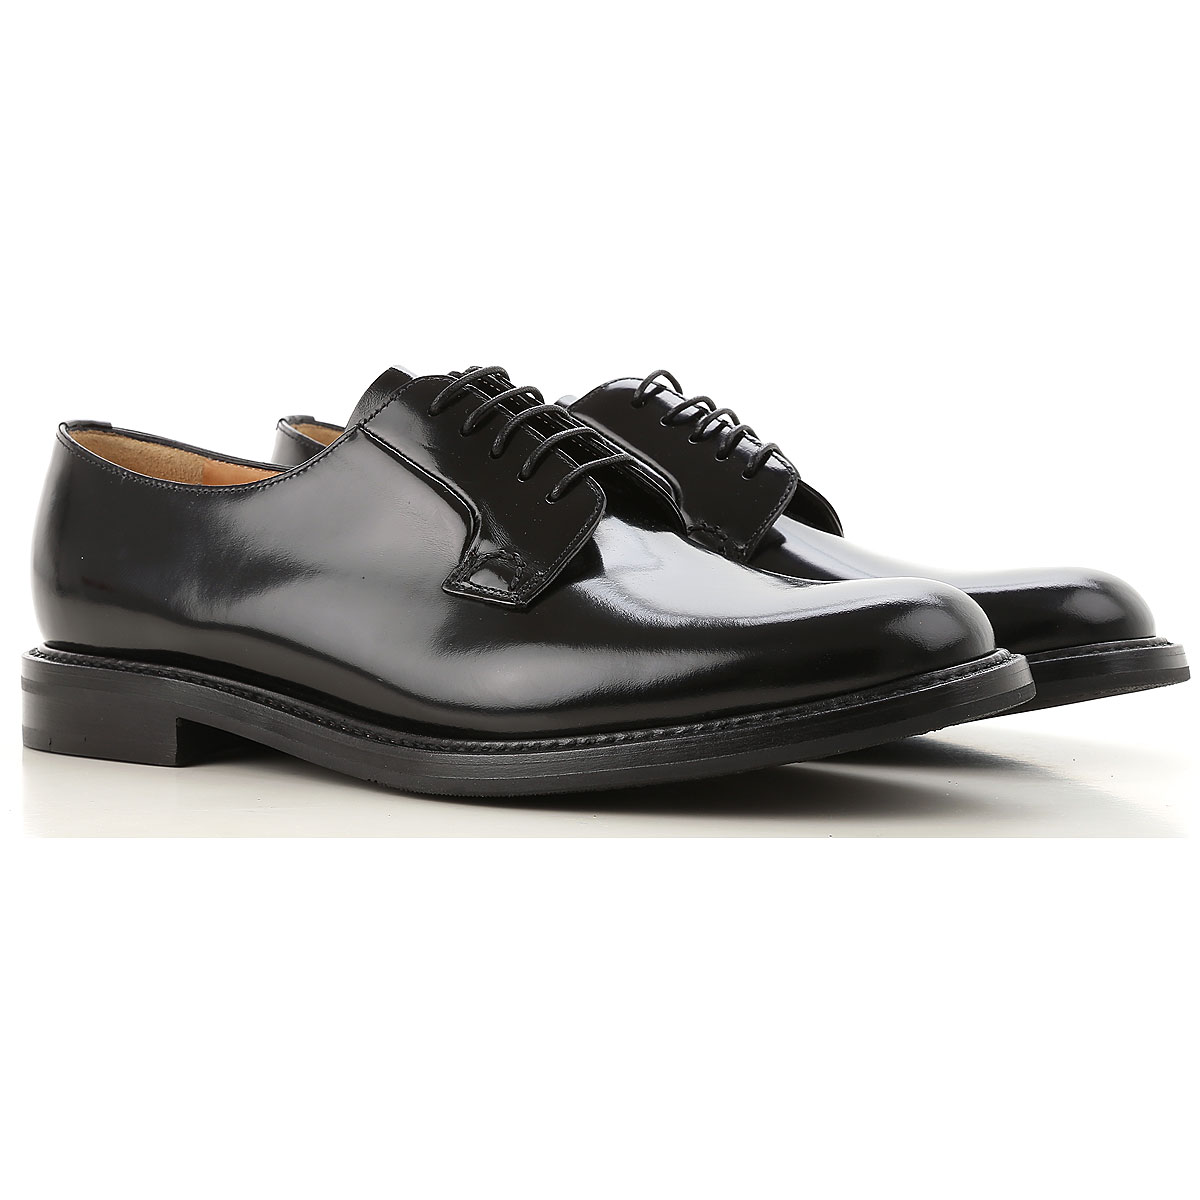 Church's Oxford Lace up Shoes for Women Black USA - GOOFASH